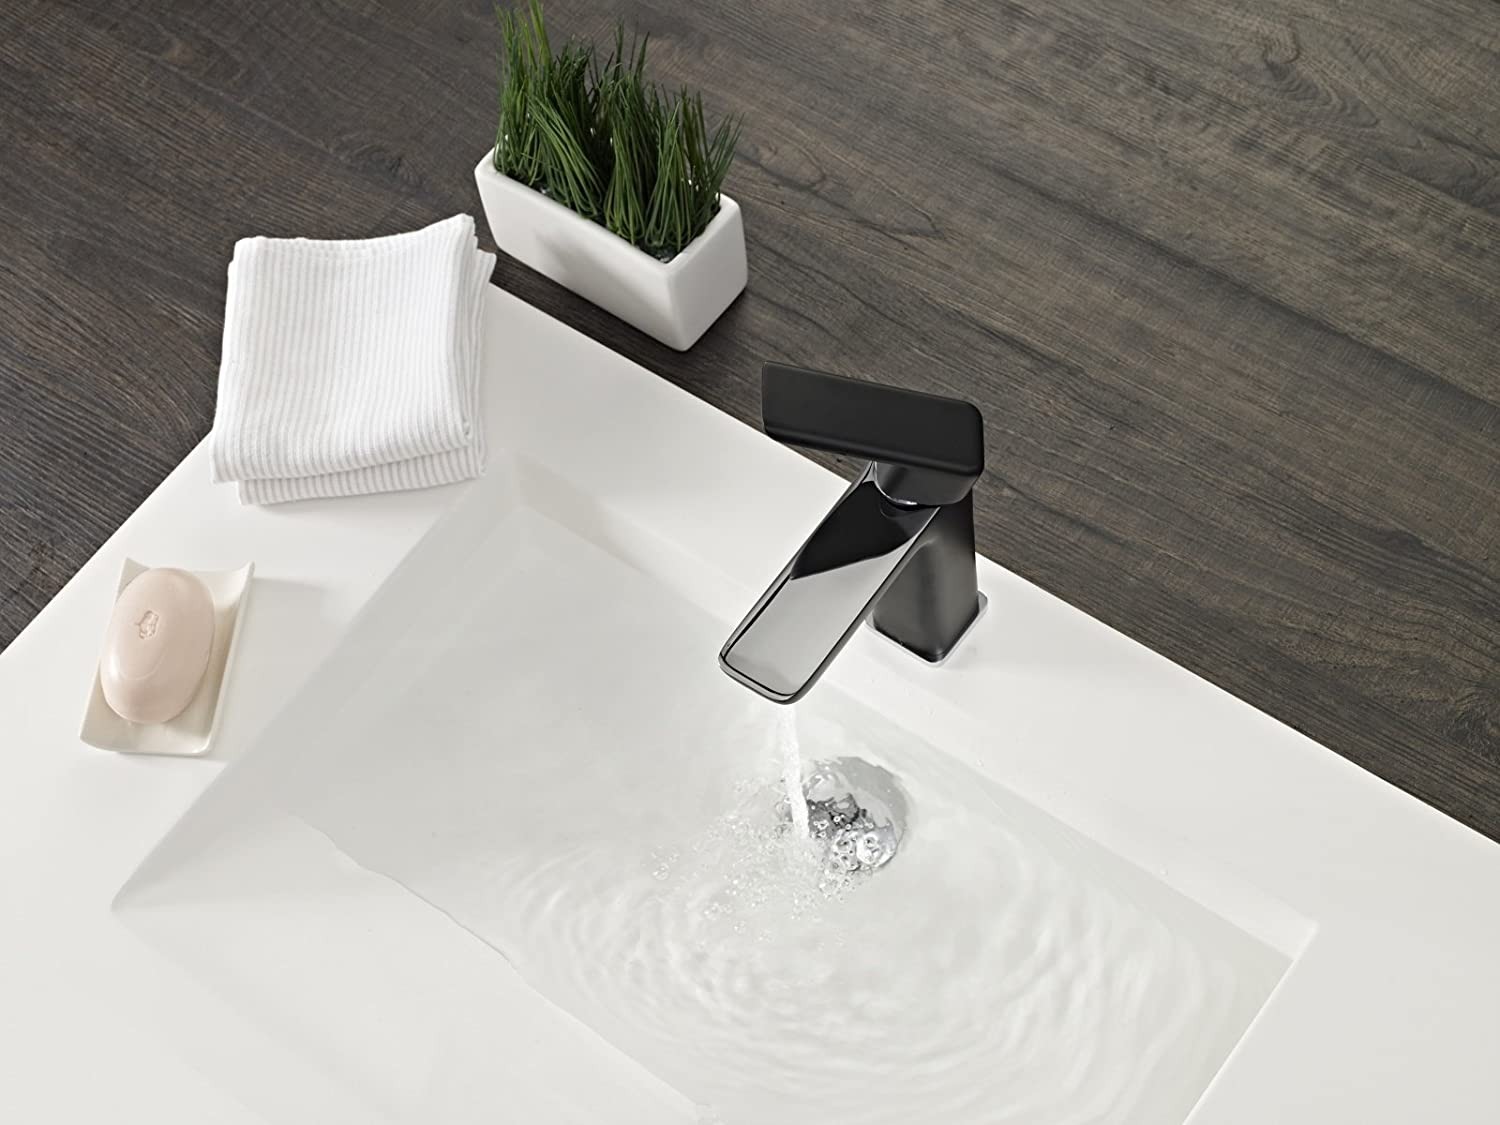 Teka Chromed Bathroom Sink tap tap tap with Fixed spout Formentera-Black 62346120NC 1309a9